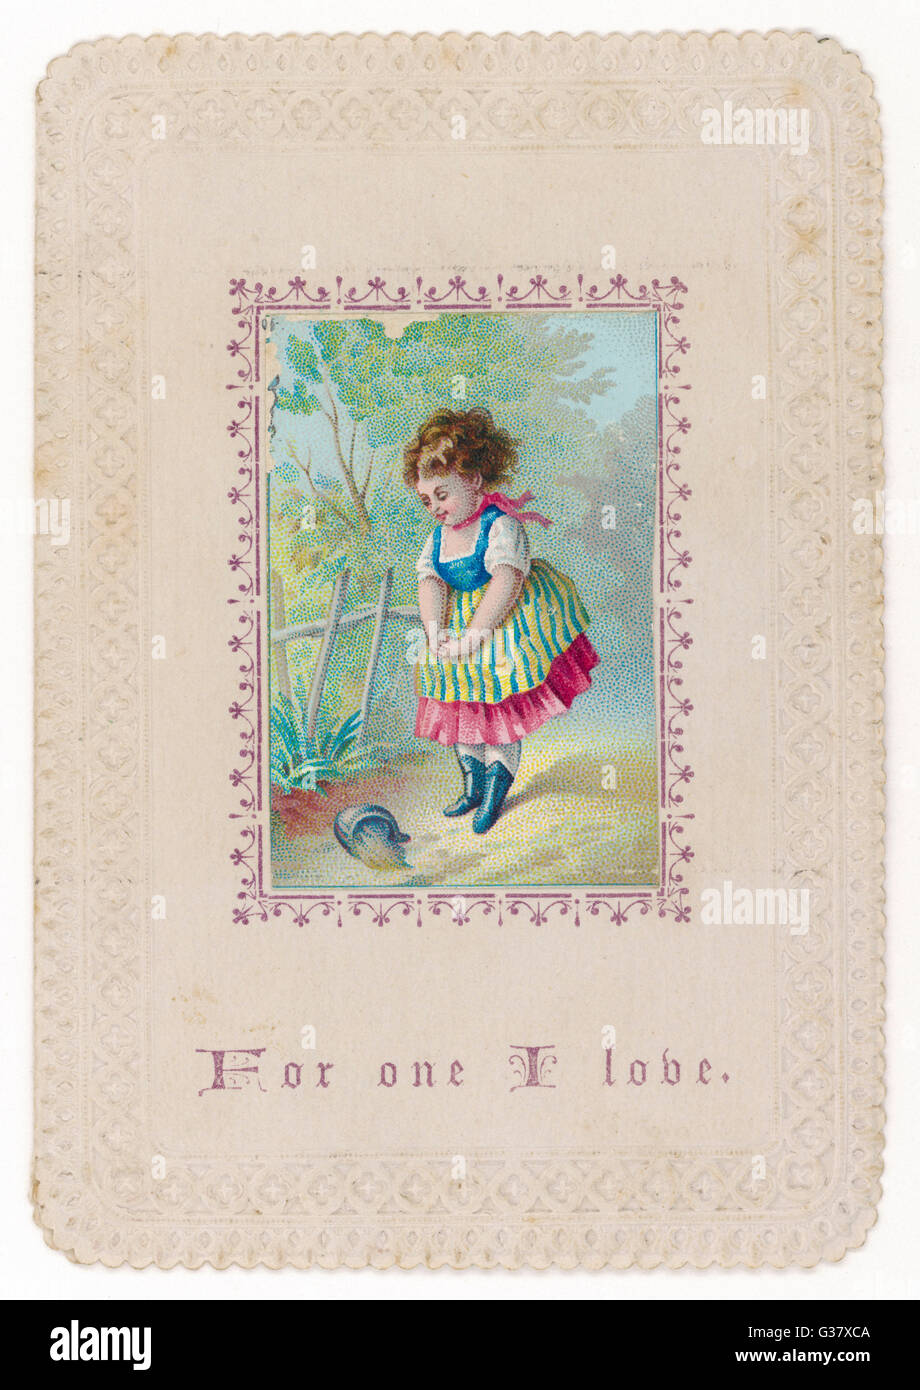 'For one I love' - girl on a path with spilt milk  - obscure symbolism ?        Date: circa 1870 - Stock Image